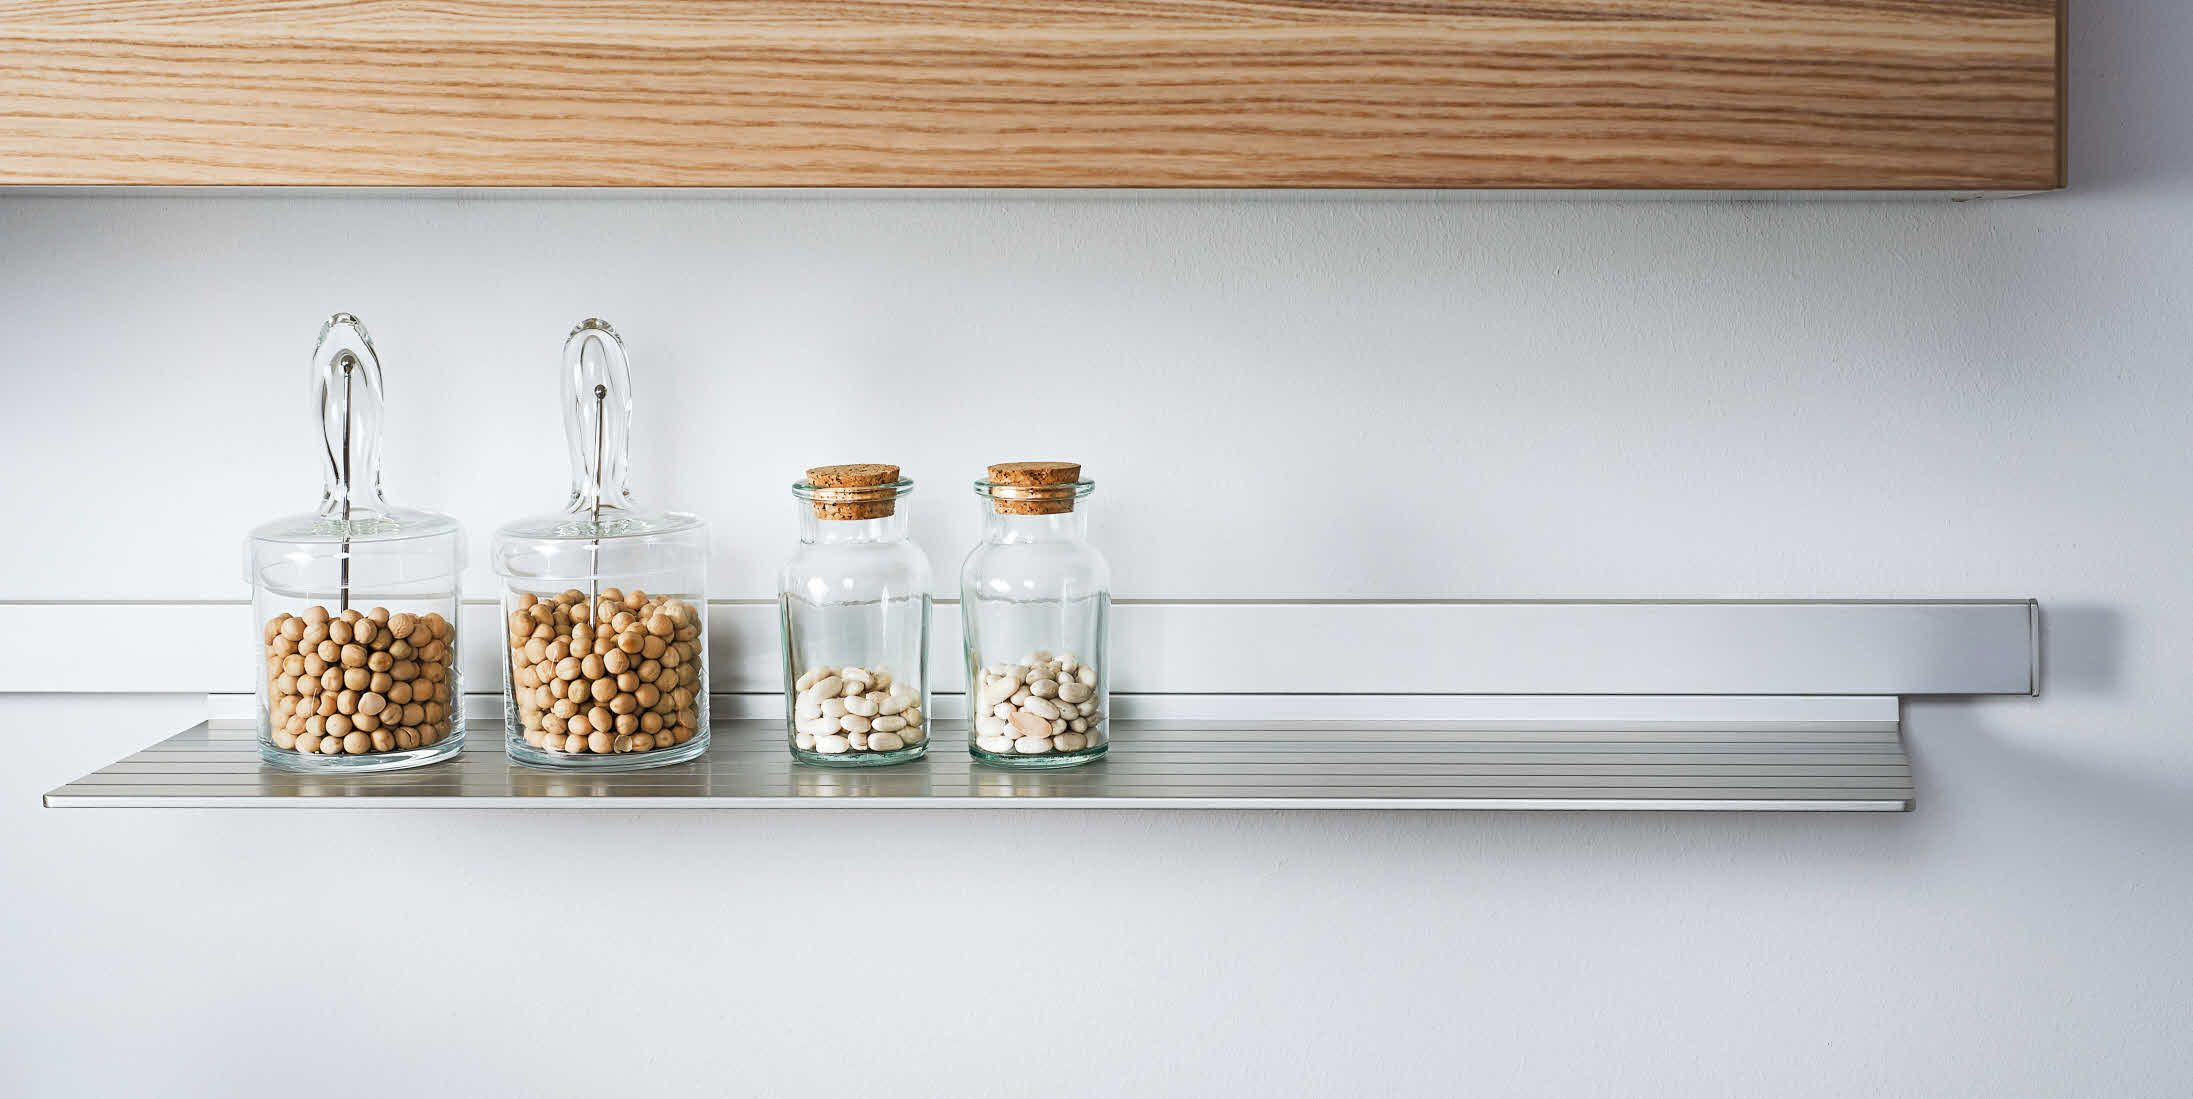 Poggenpohl Accessories   Wall System Storage Boxes On Shelf